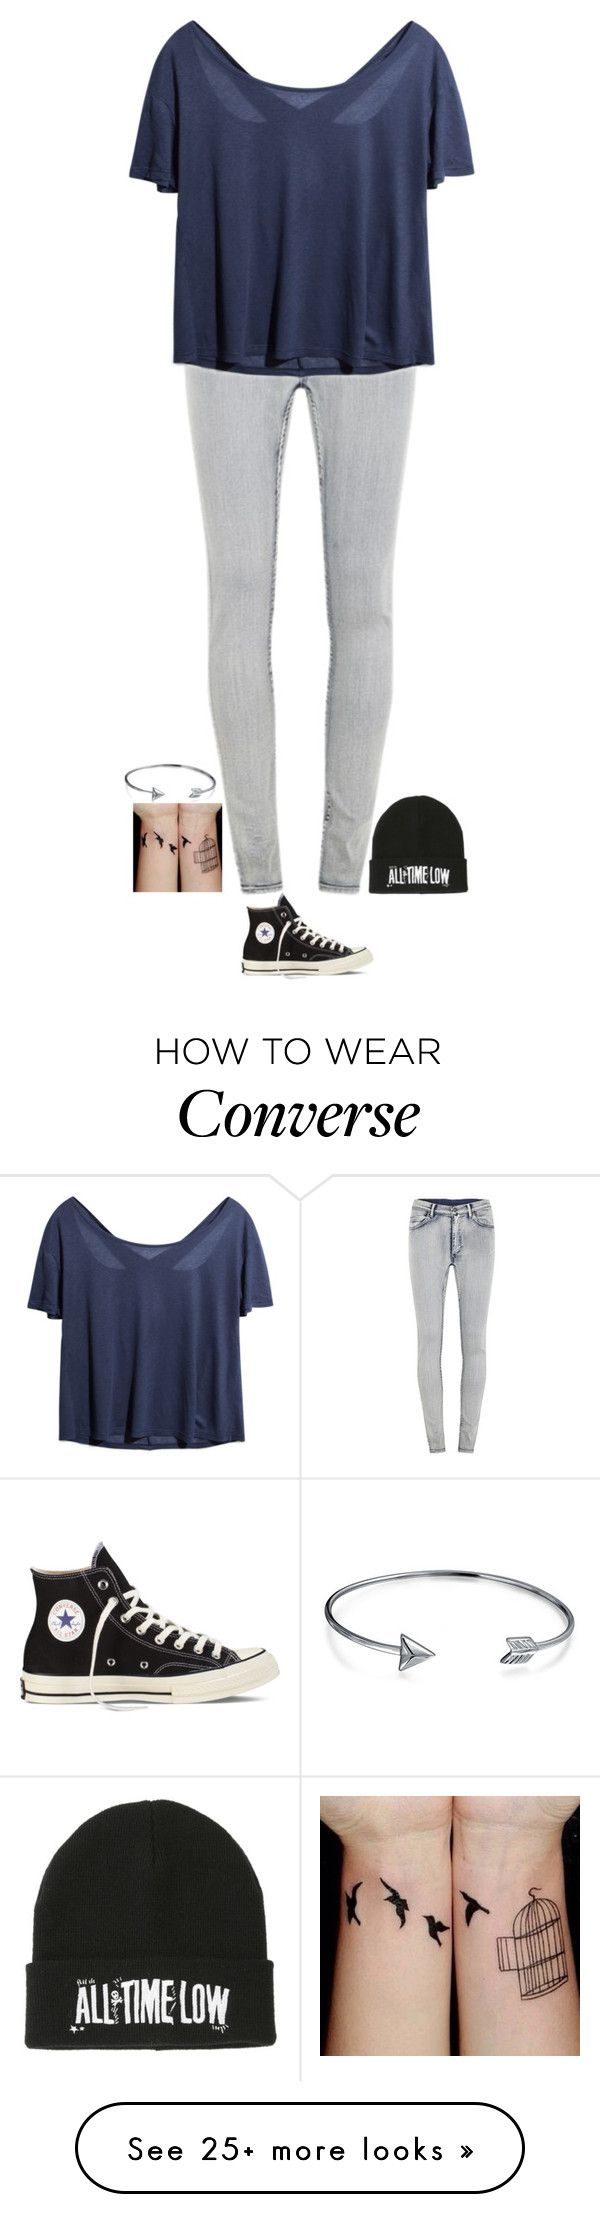 """I Need to Get Beanies"" by neb1211 on Polyvore featuring Cheap Monday, Converse and Bling Jewelry"